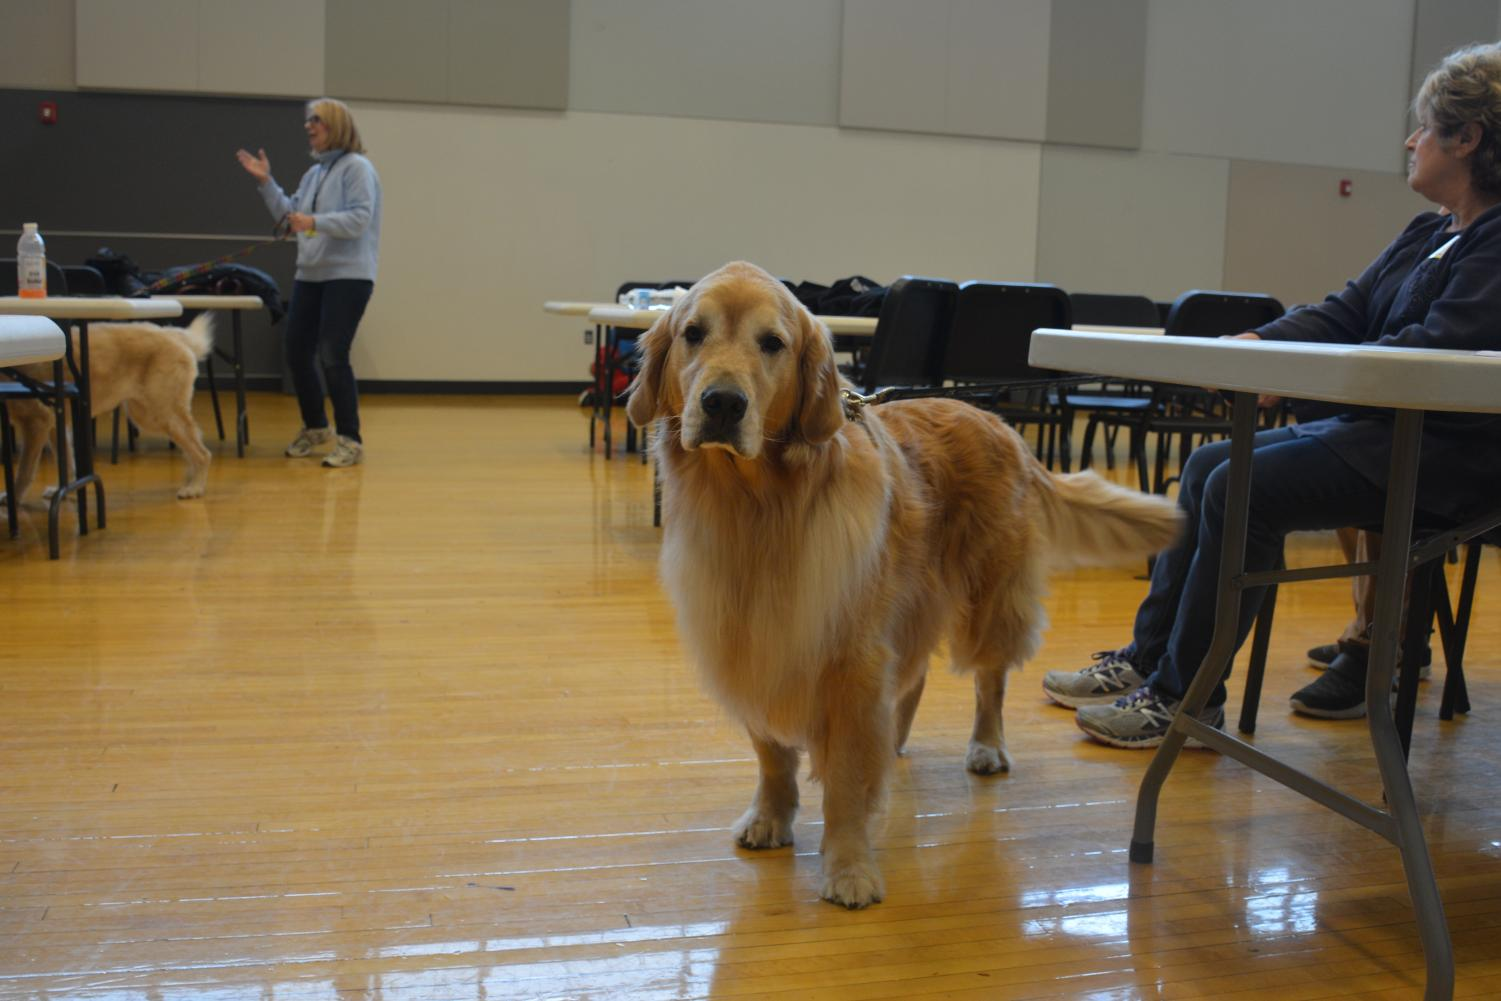 Students enjoyed a visit from therapy dogs during December exams.